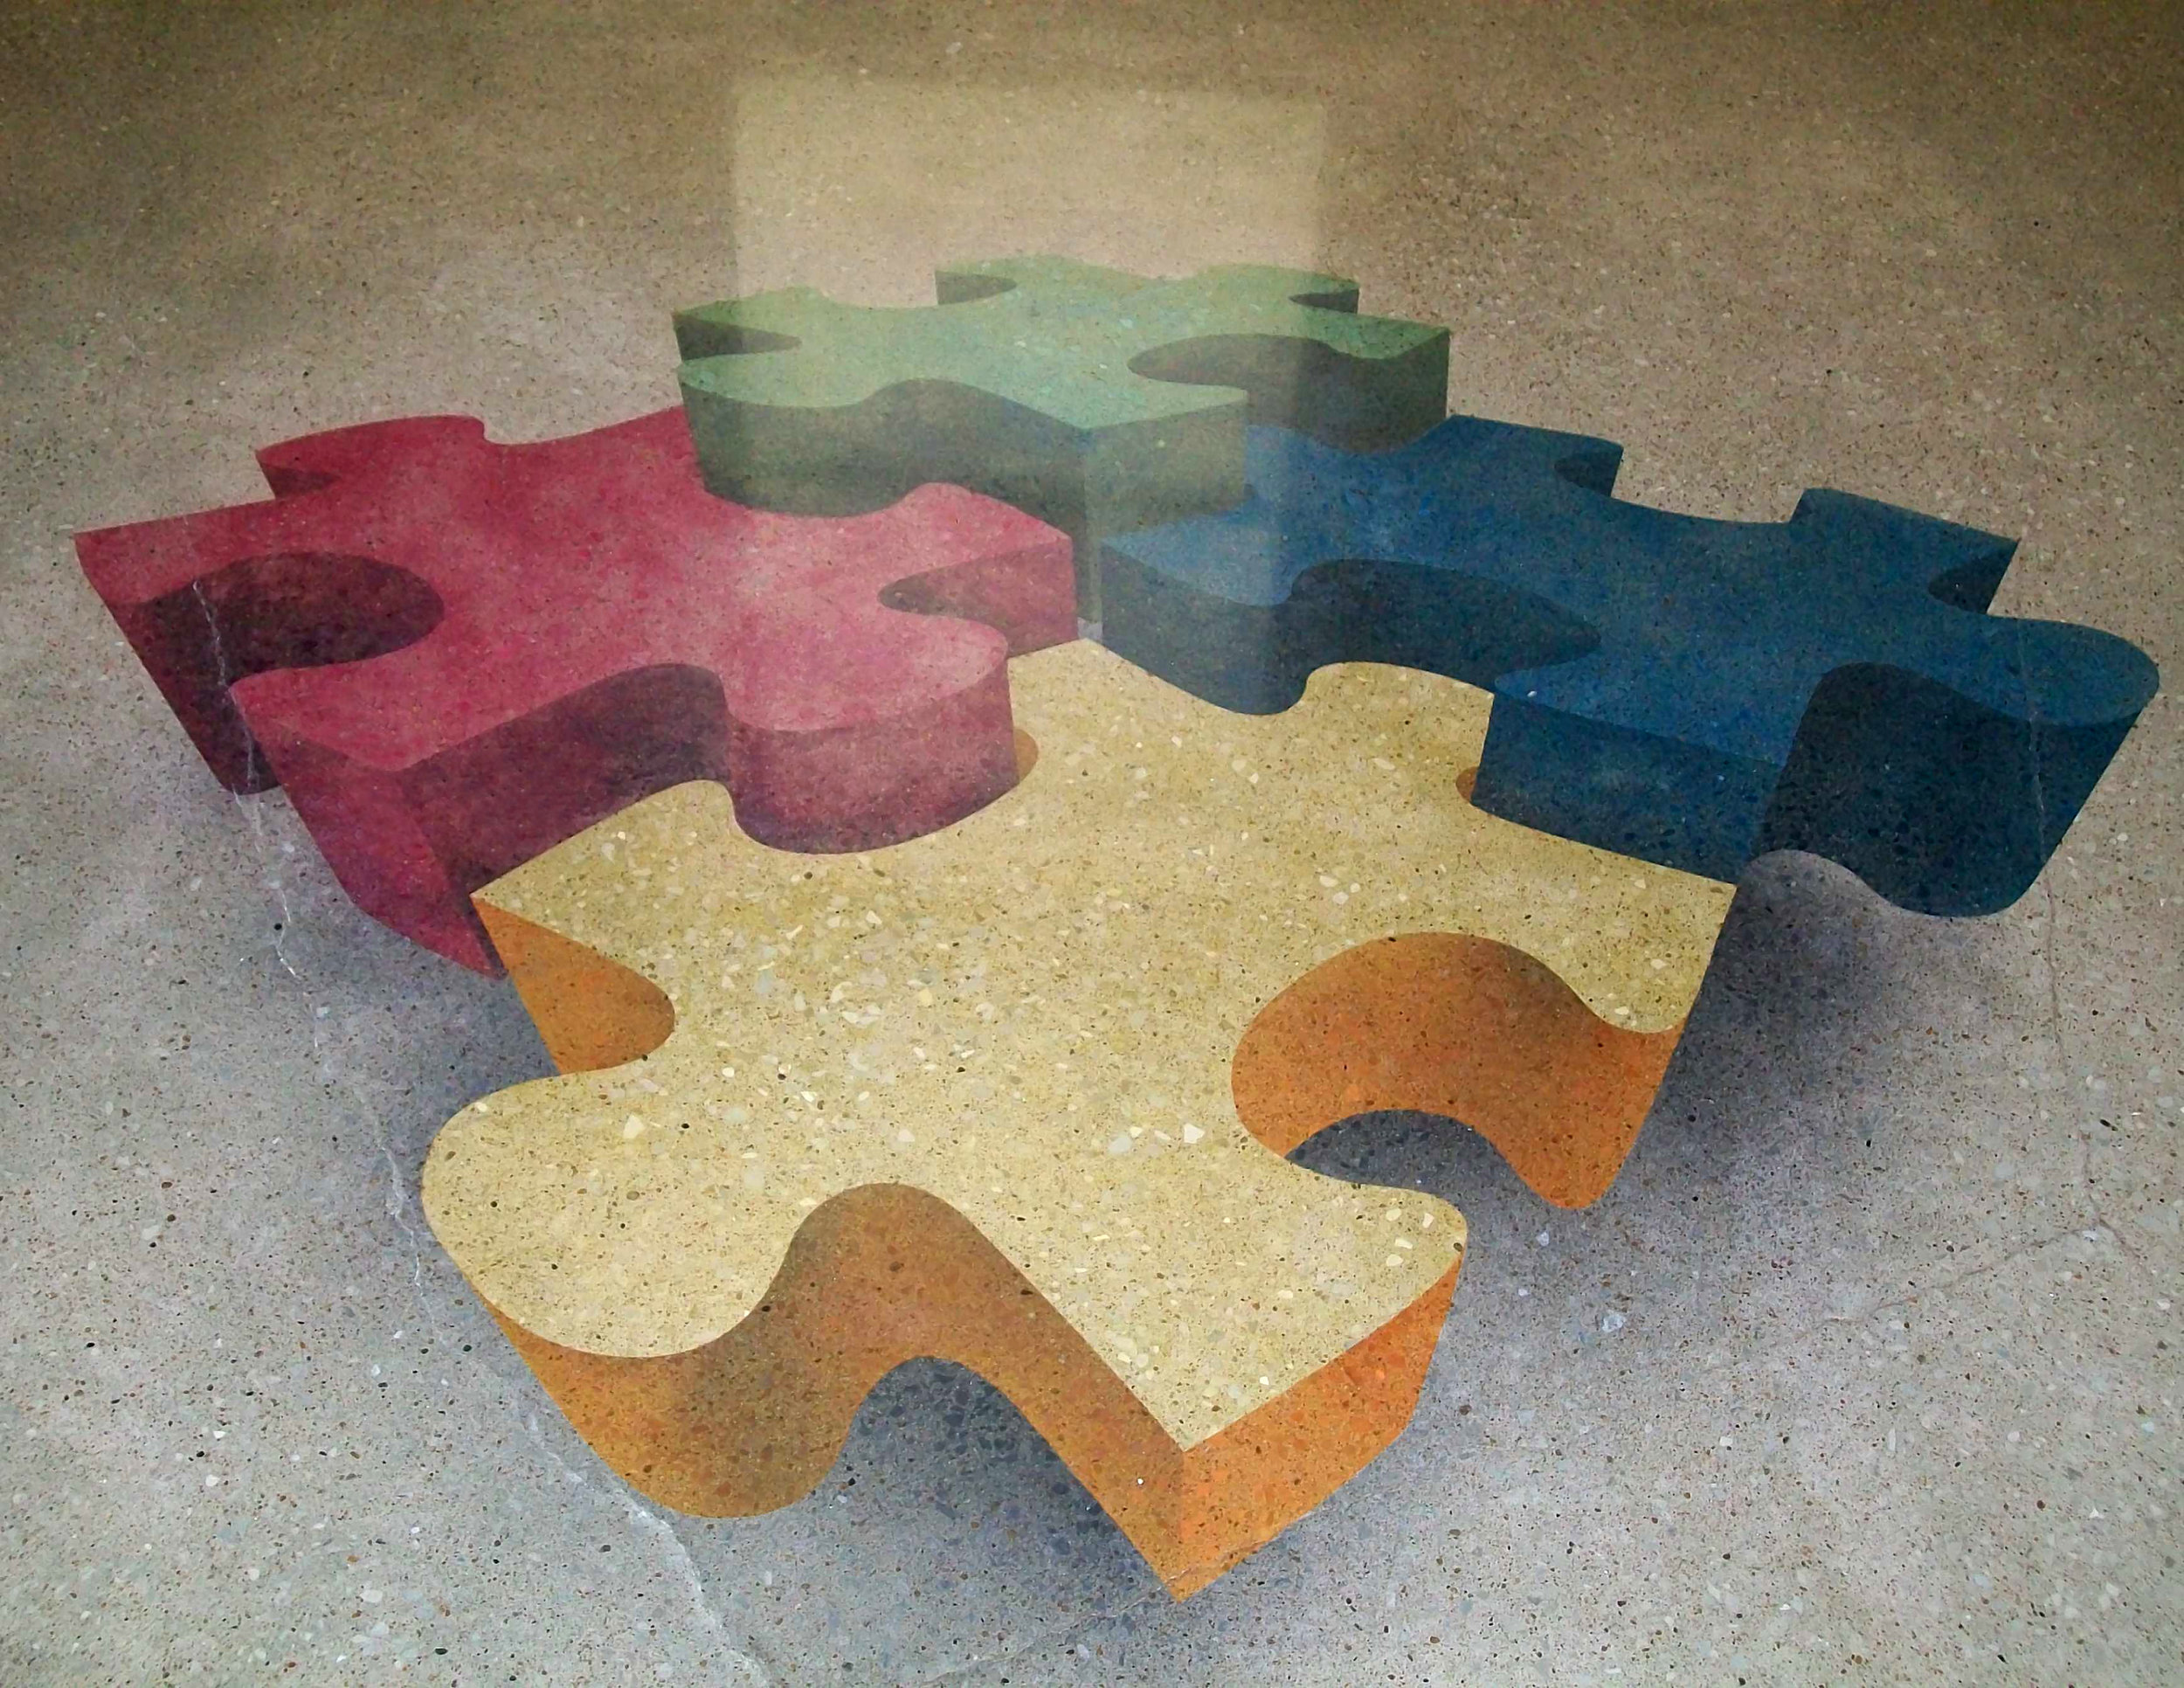 Superior Polished Concrete_PuzzlePieces02.jpg